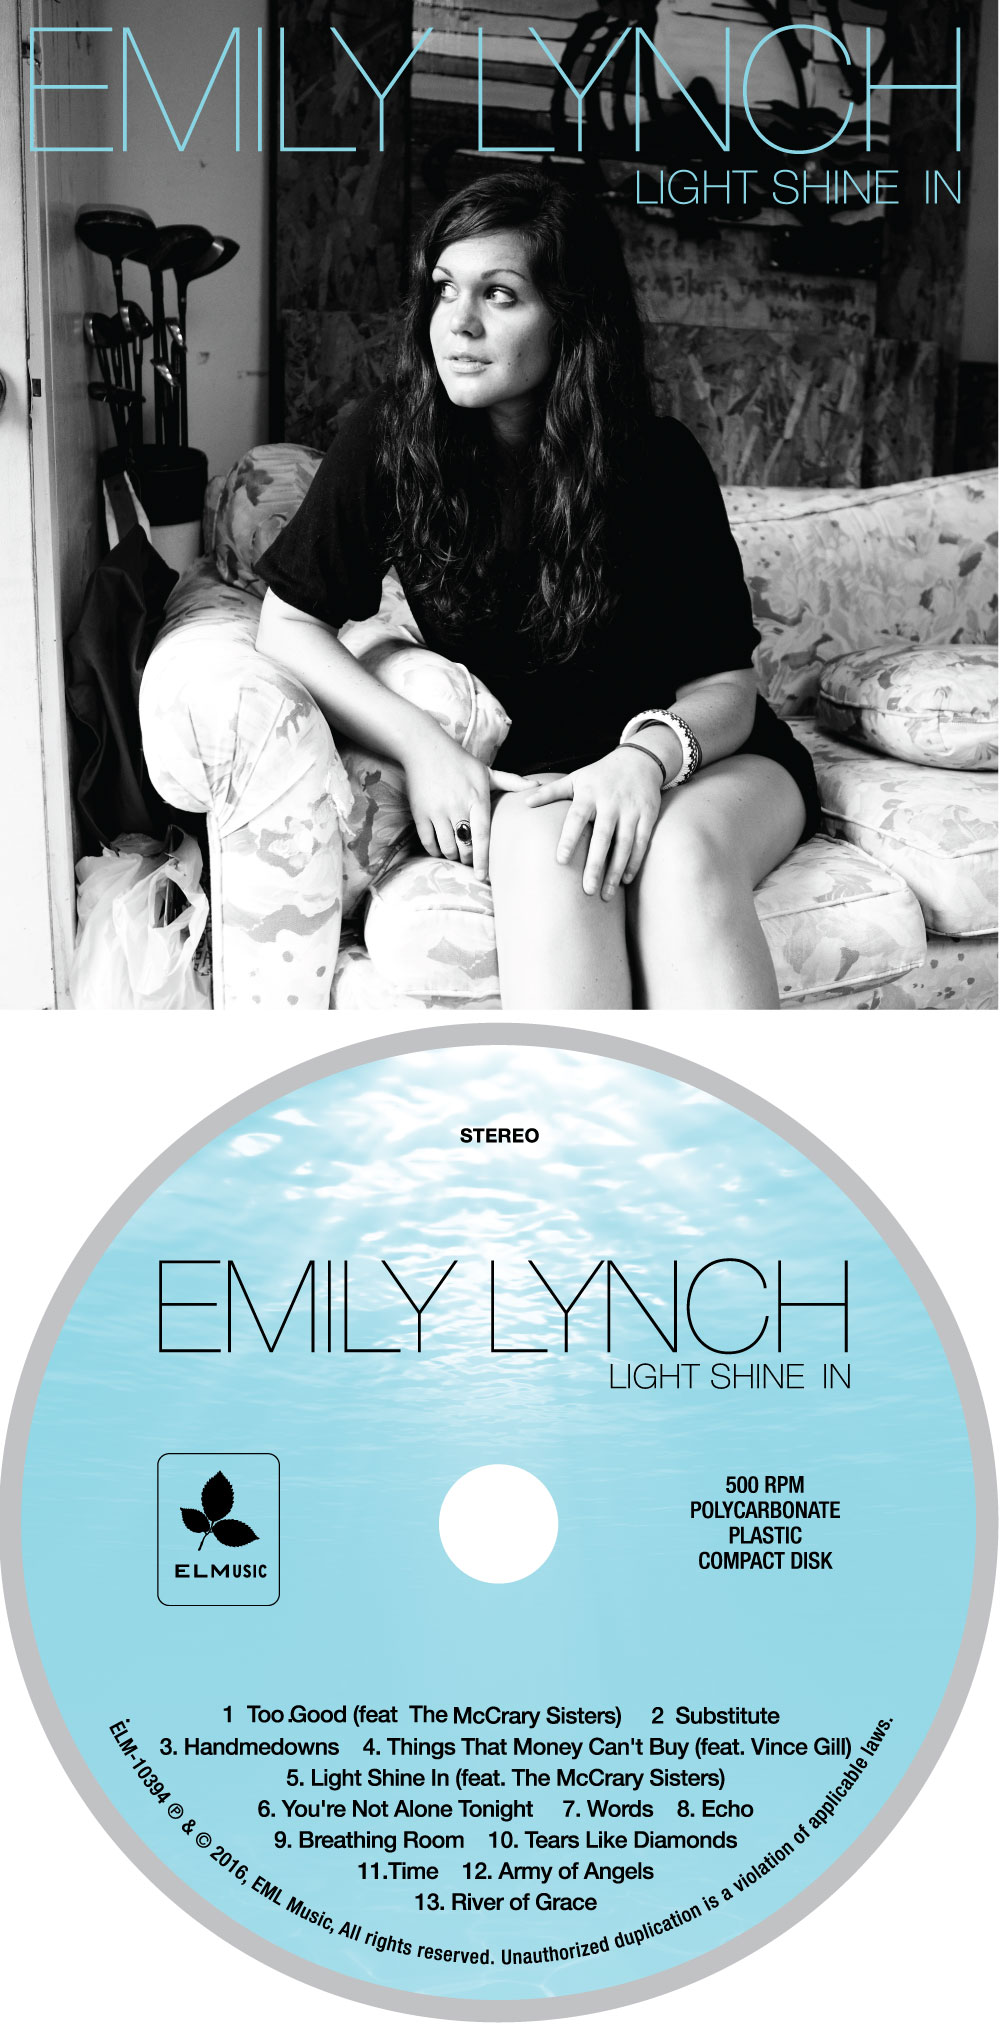 EmilyLynch_album_1.1